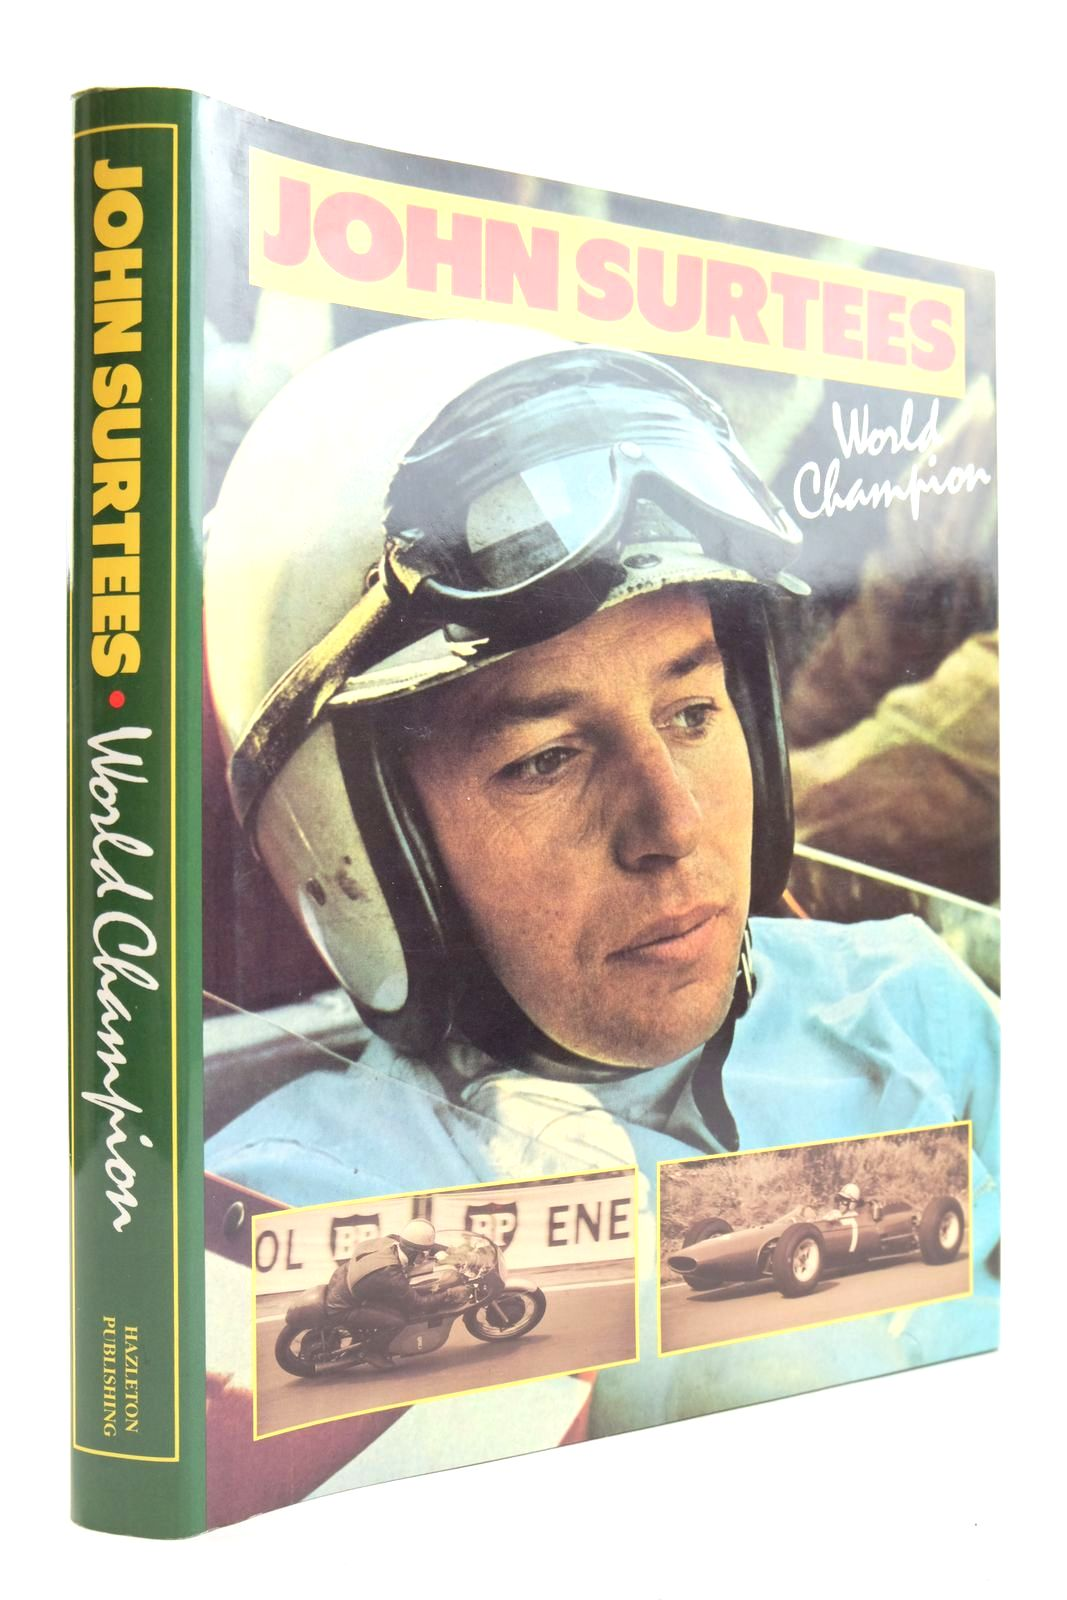 Photo of JOHN SURTEES WORLD CHAMPION- Stock Number: 2132980